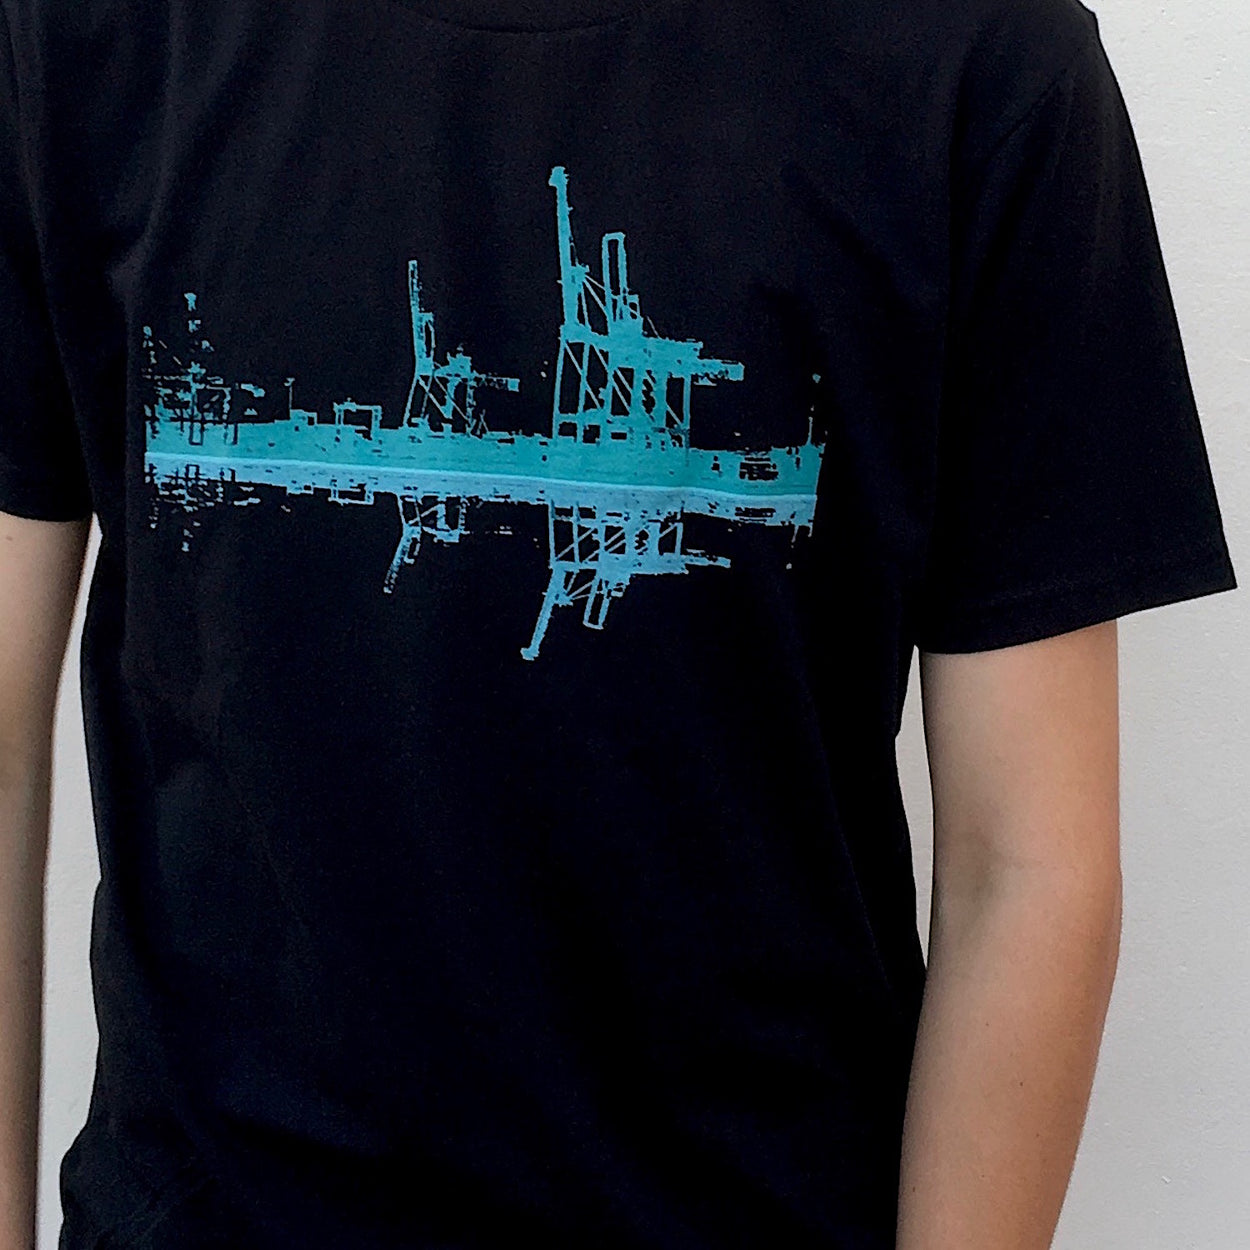 Photograph of screenprinted t-shirt depicting the container cranes at Fremantle Harbour.